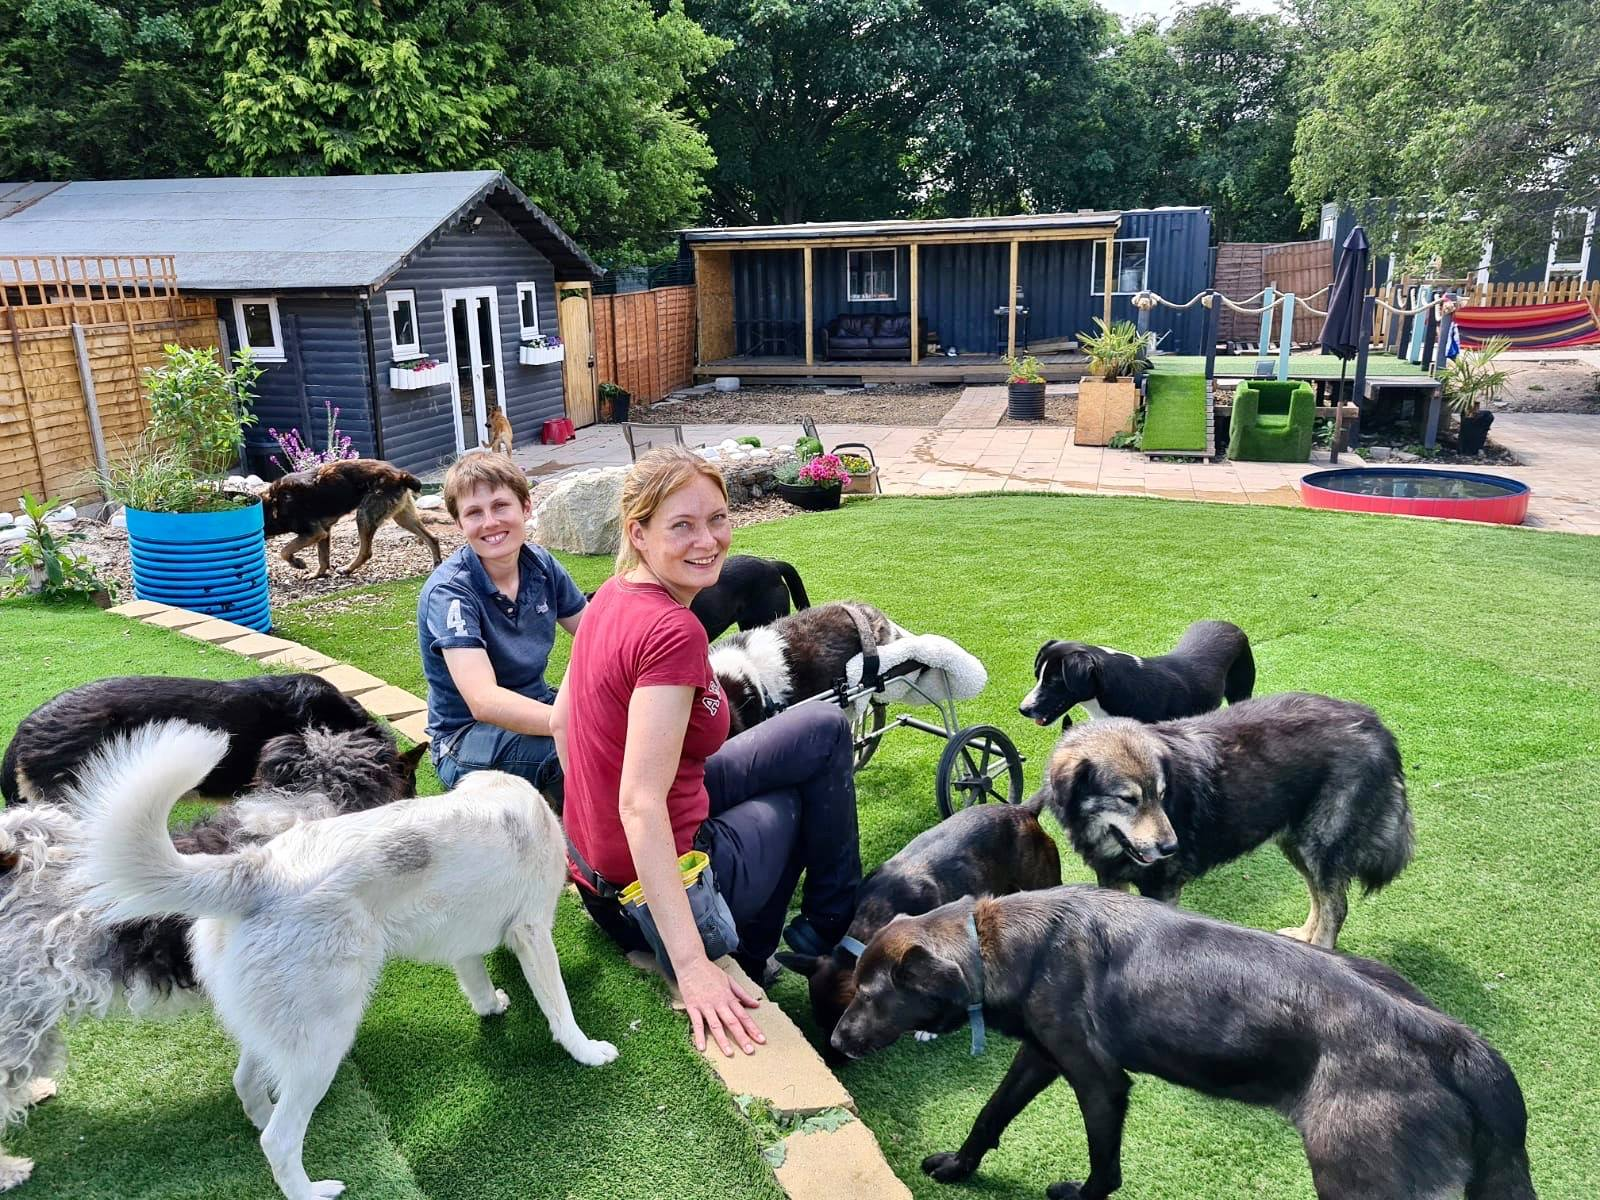 Dogs4Rescue needs your help to build new home for unwanted pooches, The Manc